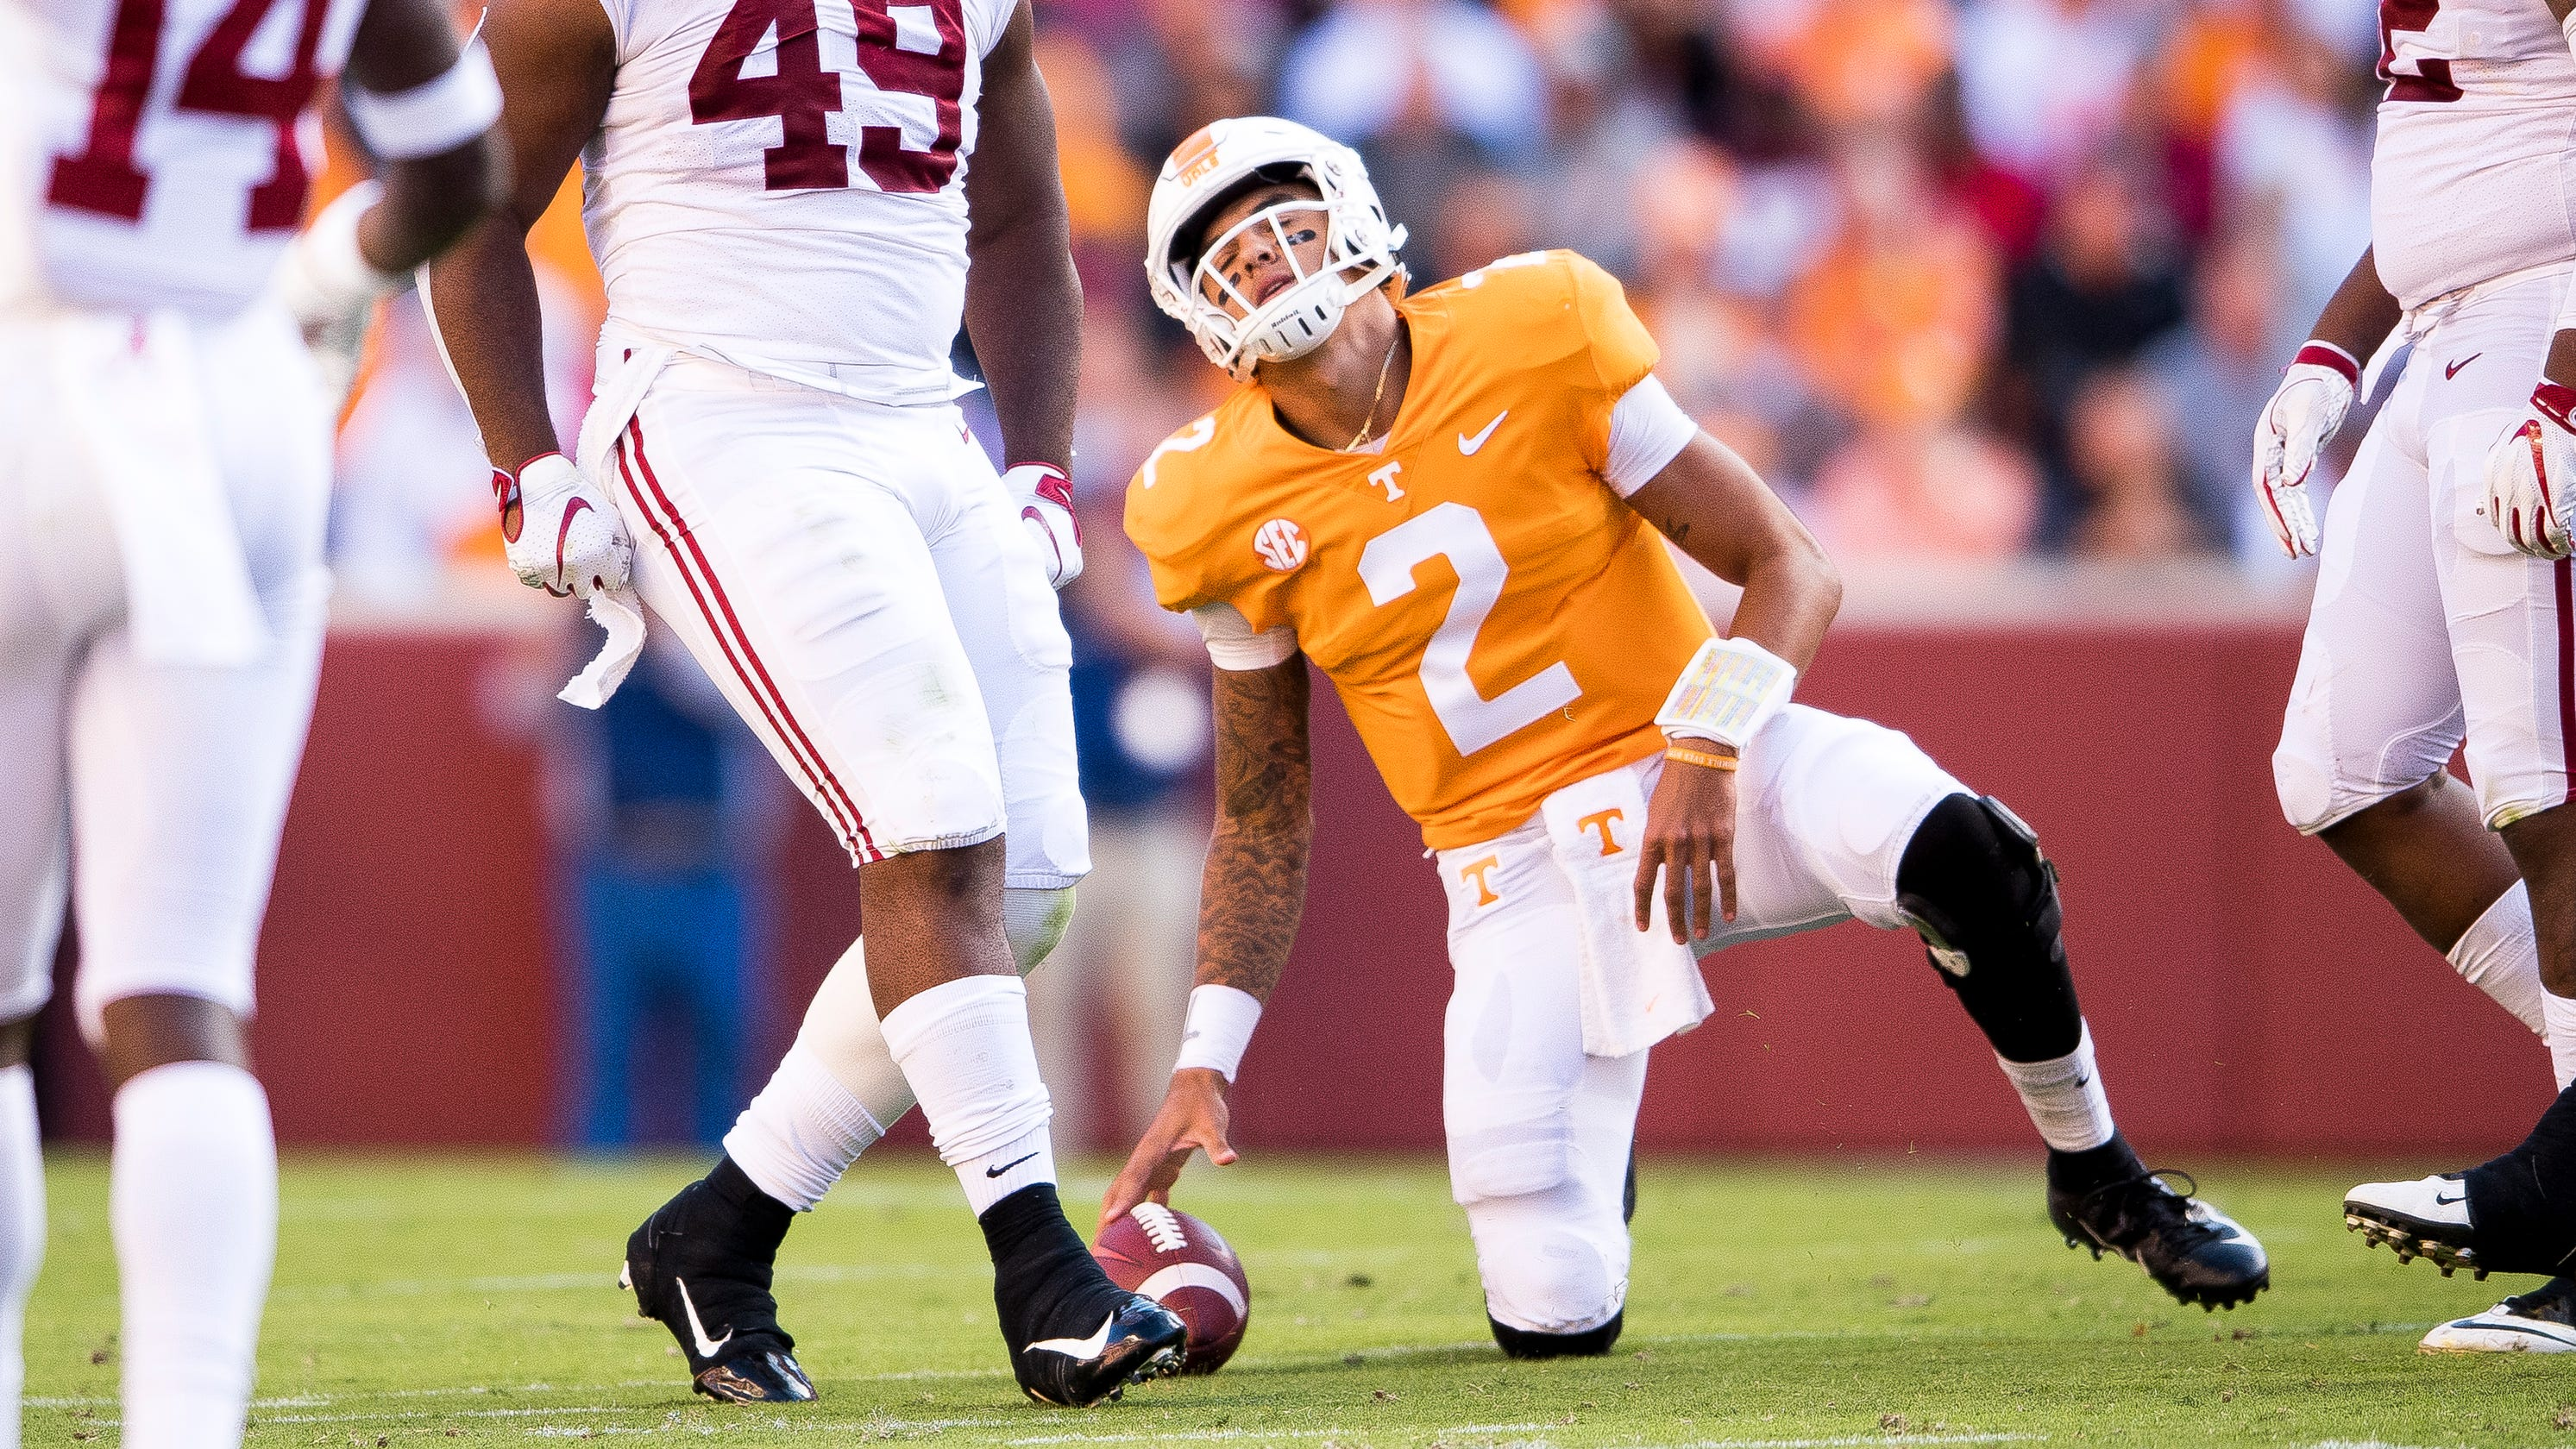 UT Vols: Tennessee football vs South Carolina 5 things to know